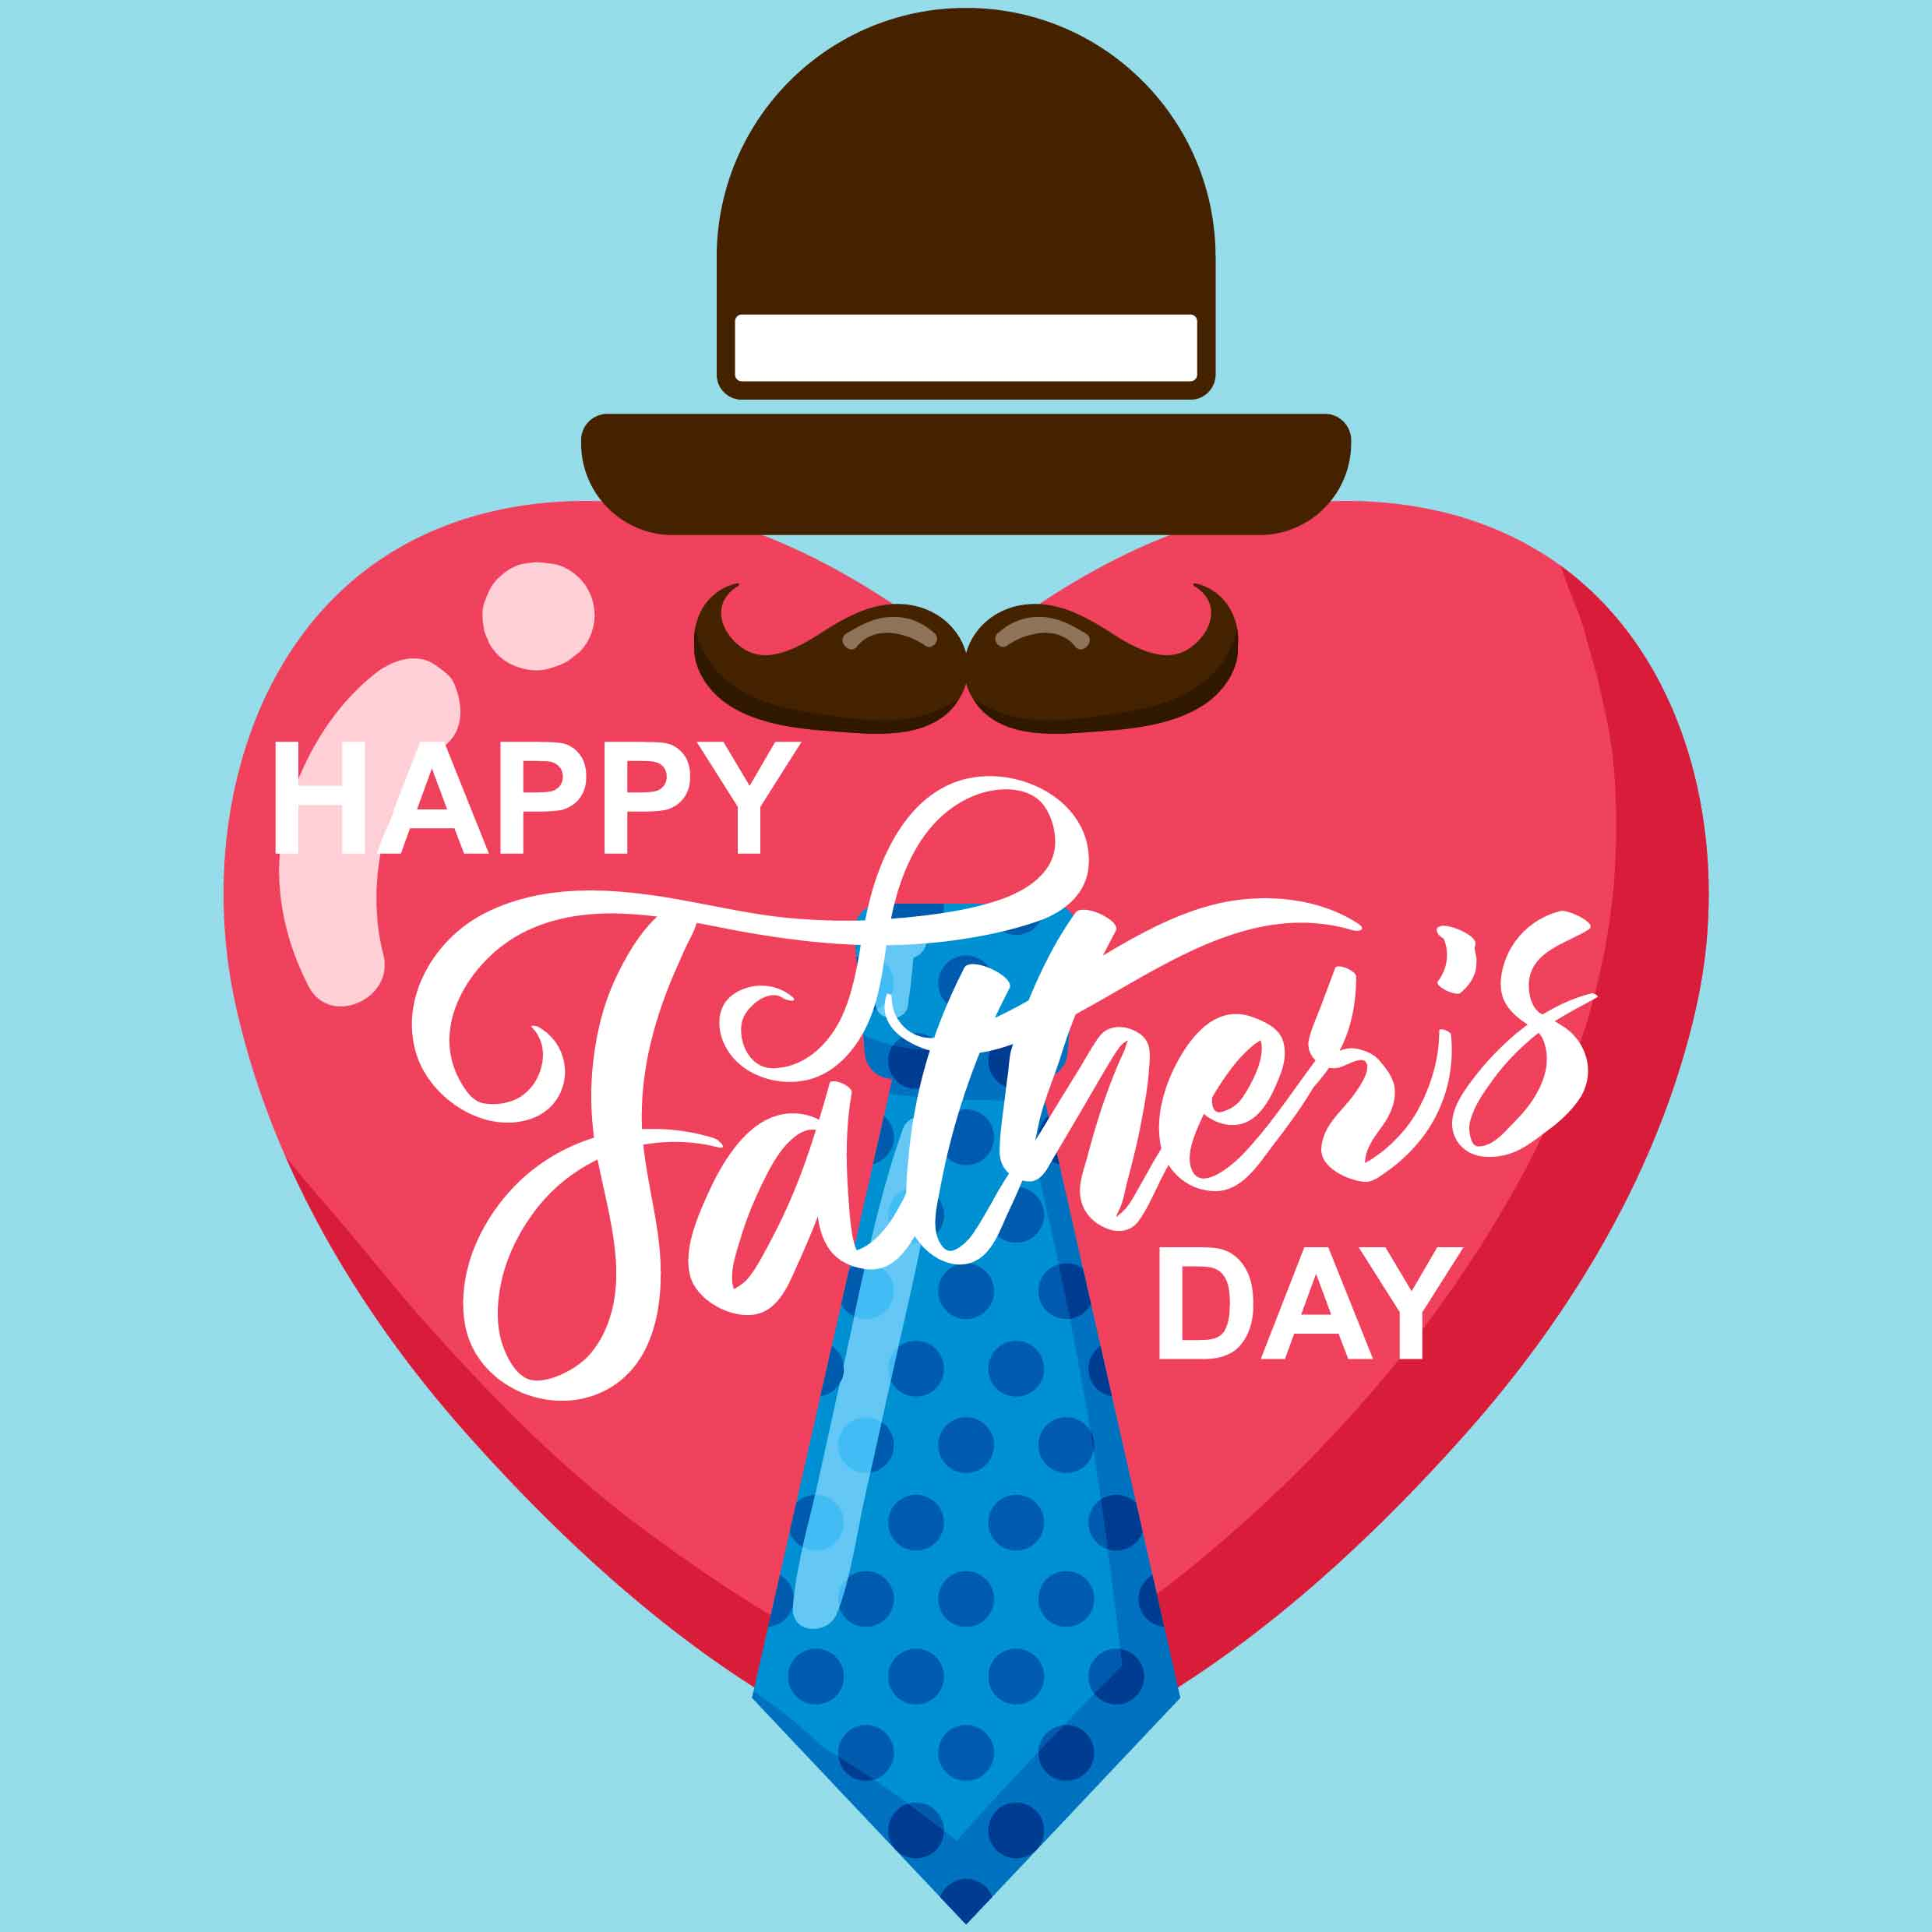 Happy Fathers Day - Download Free Vector Art, Stock ...